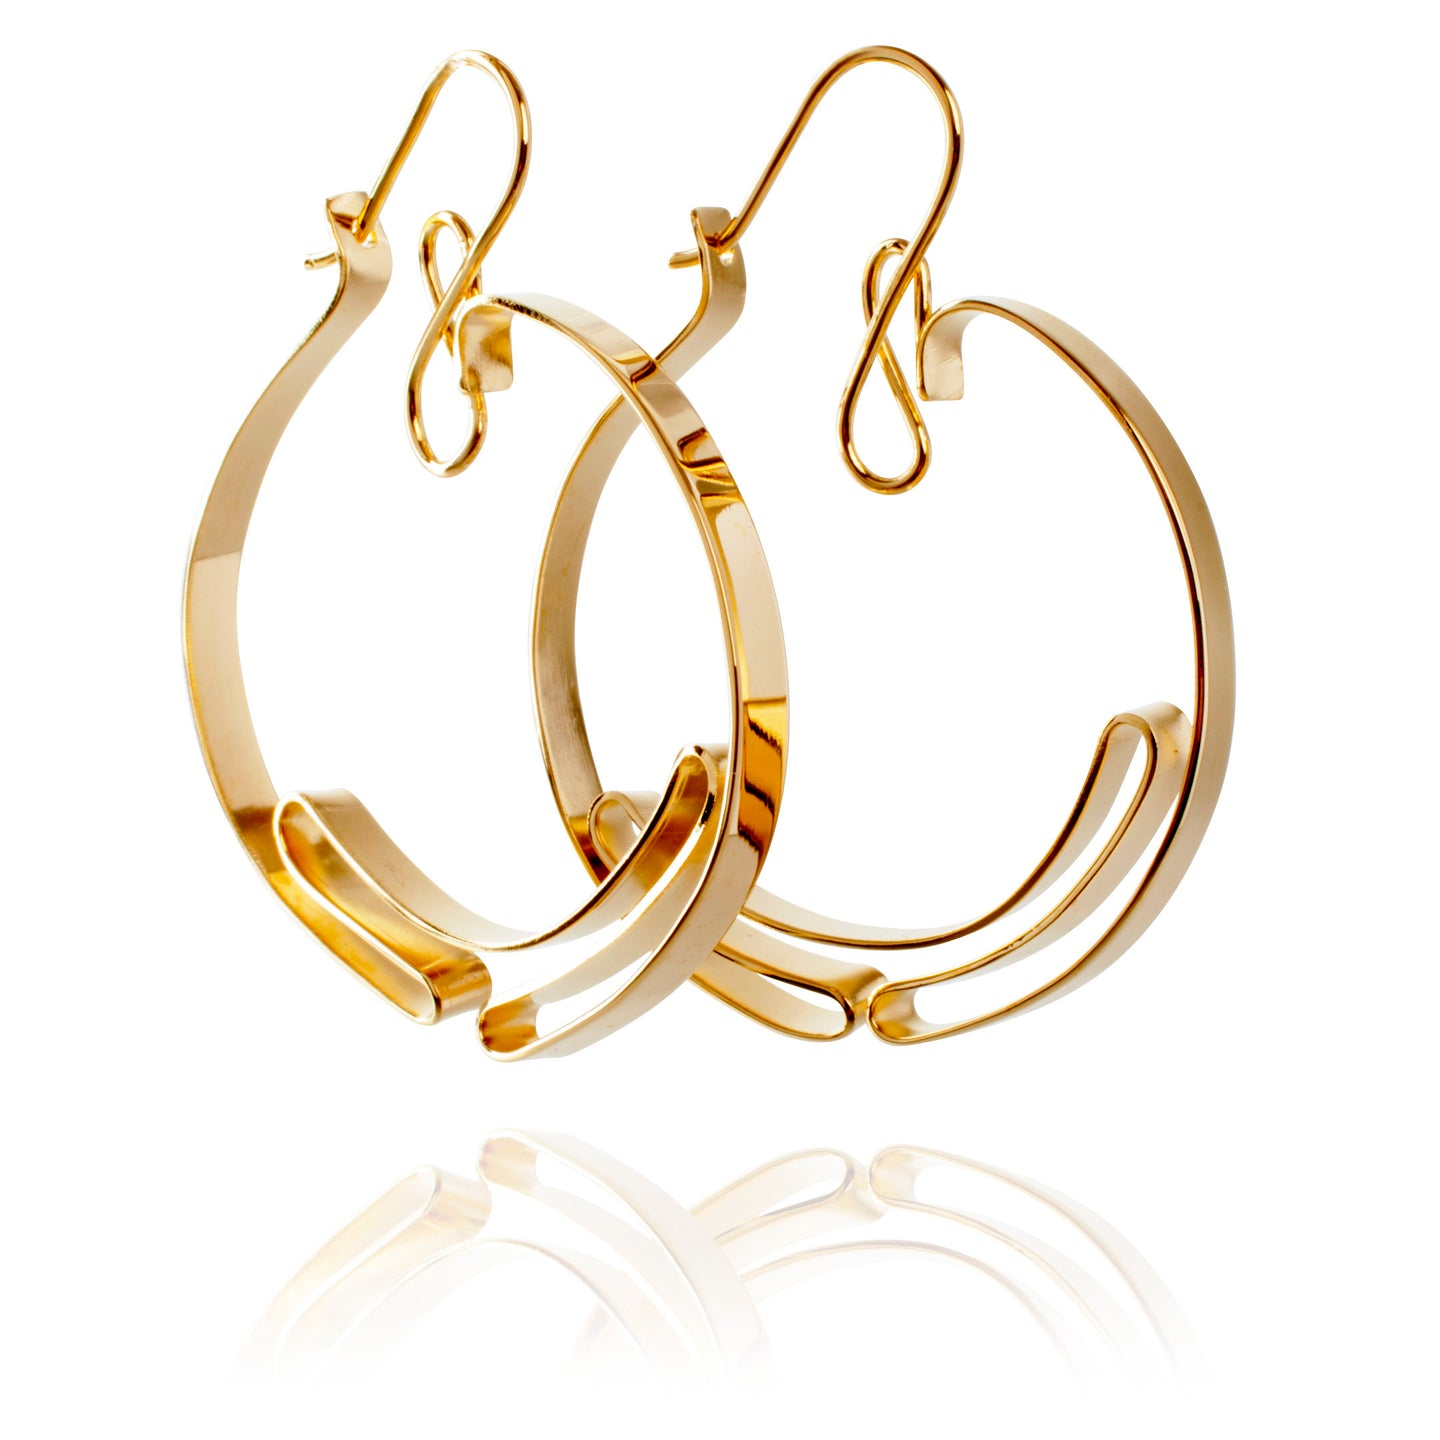 The Insider Hoop Earring